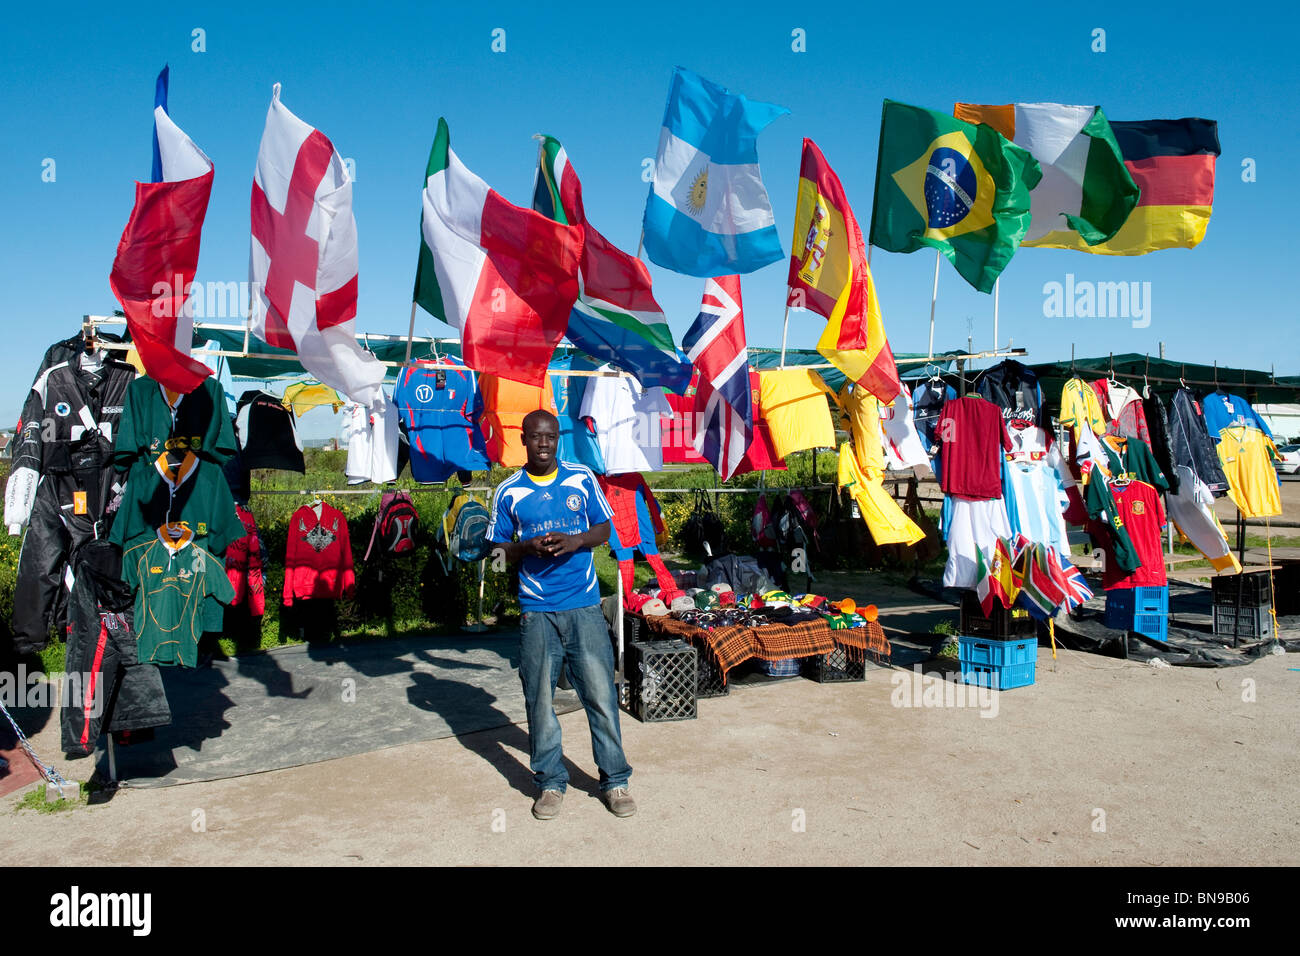 Vendor in front of his kiosk with Wold Cup 2010 Utensils in Langebaan Western Cape South Africa - Stock Image